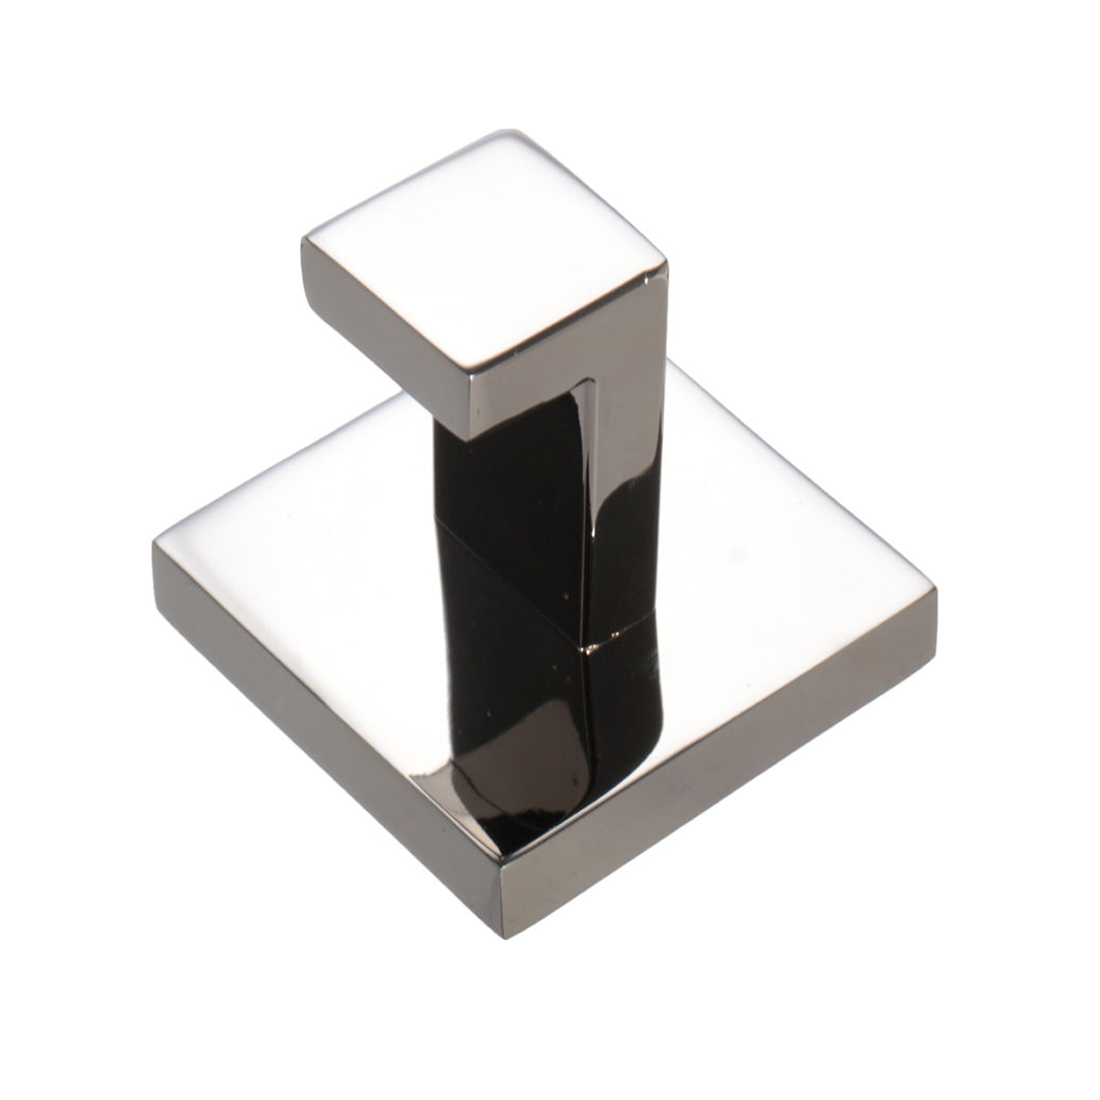 304 stainless square mirror polish coat towel robe holder for Mirror hangers